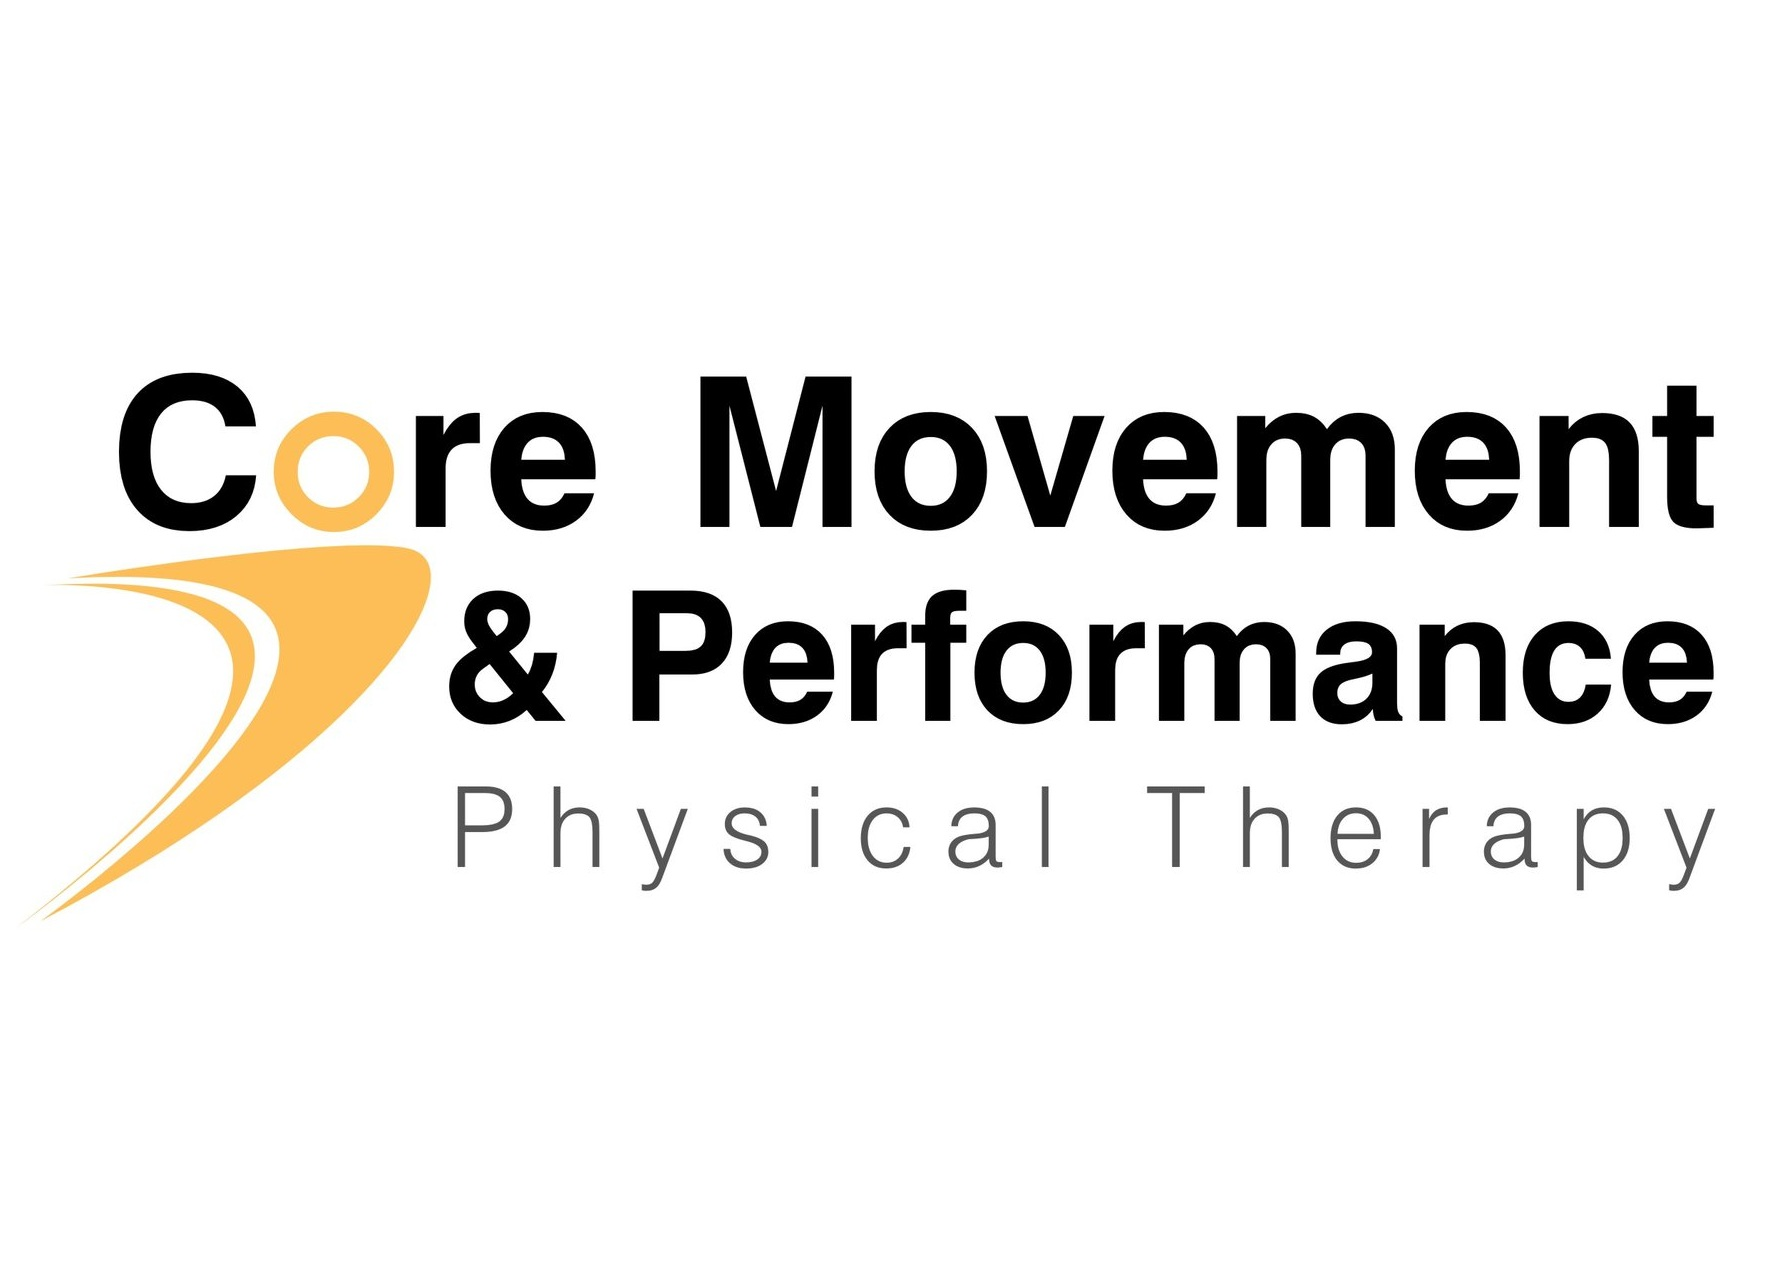 Physical Therapy - Interested in having a Doctor of Physical Therapy come to your office for individual evaluations?Fein Movement is now teaming up with Core Movement & Performance PT for combined workshops!